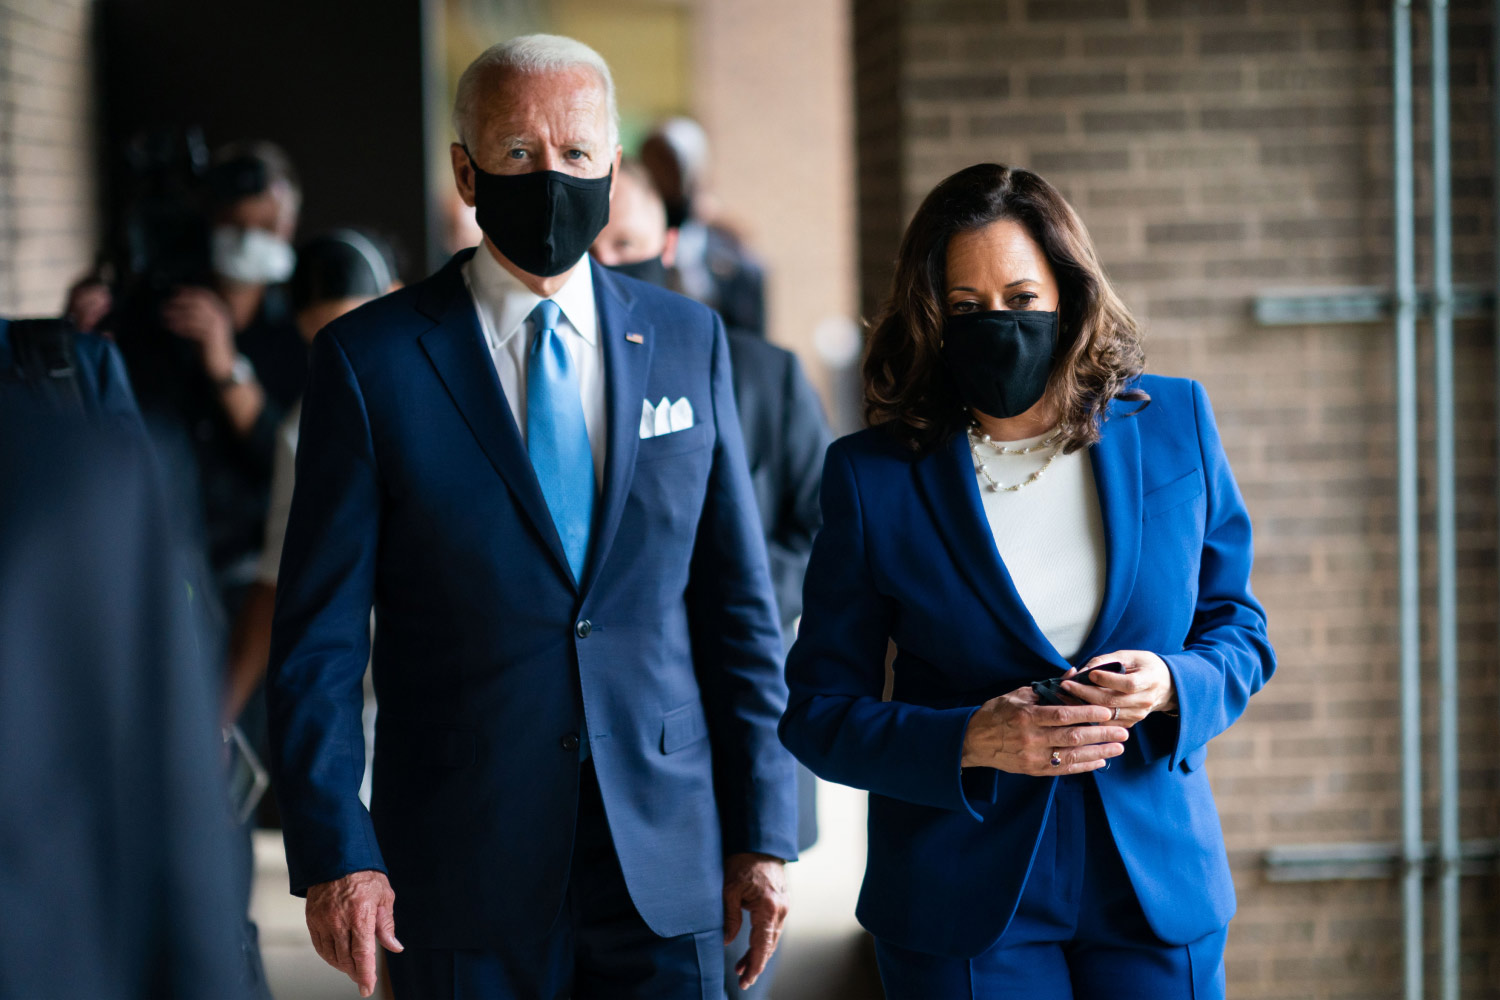 President Biden and Vice President Harris walking while wearing masks.